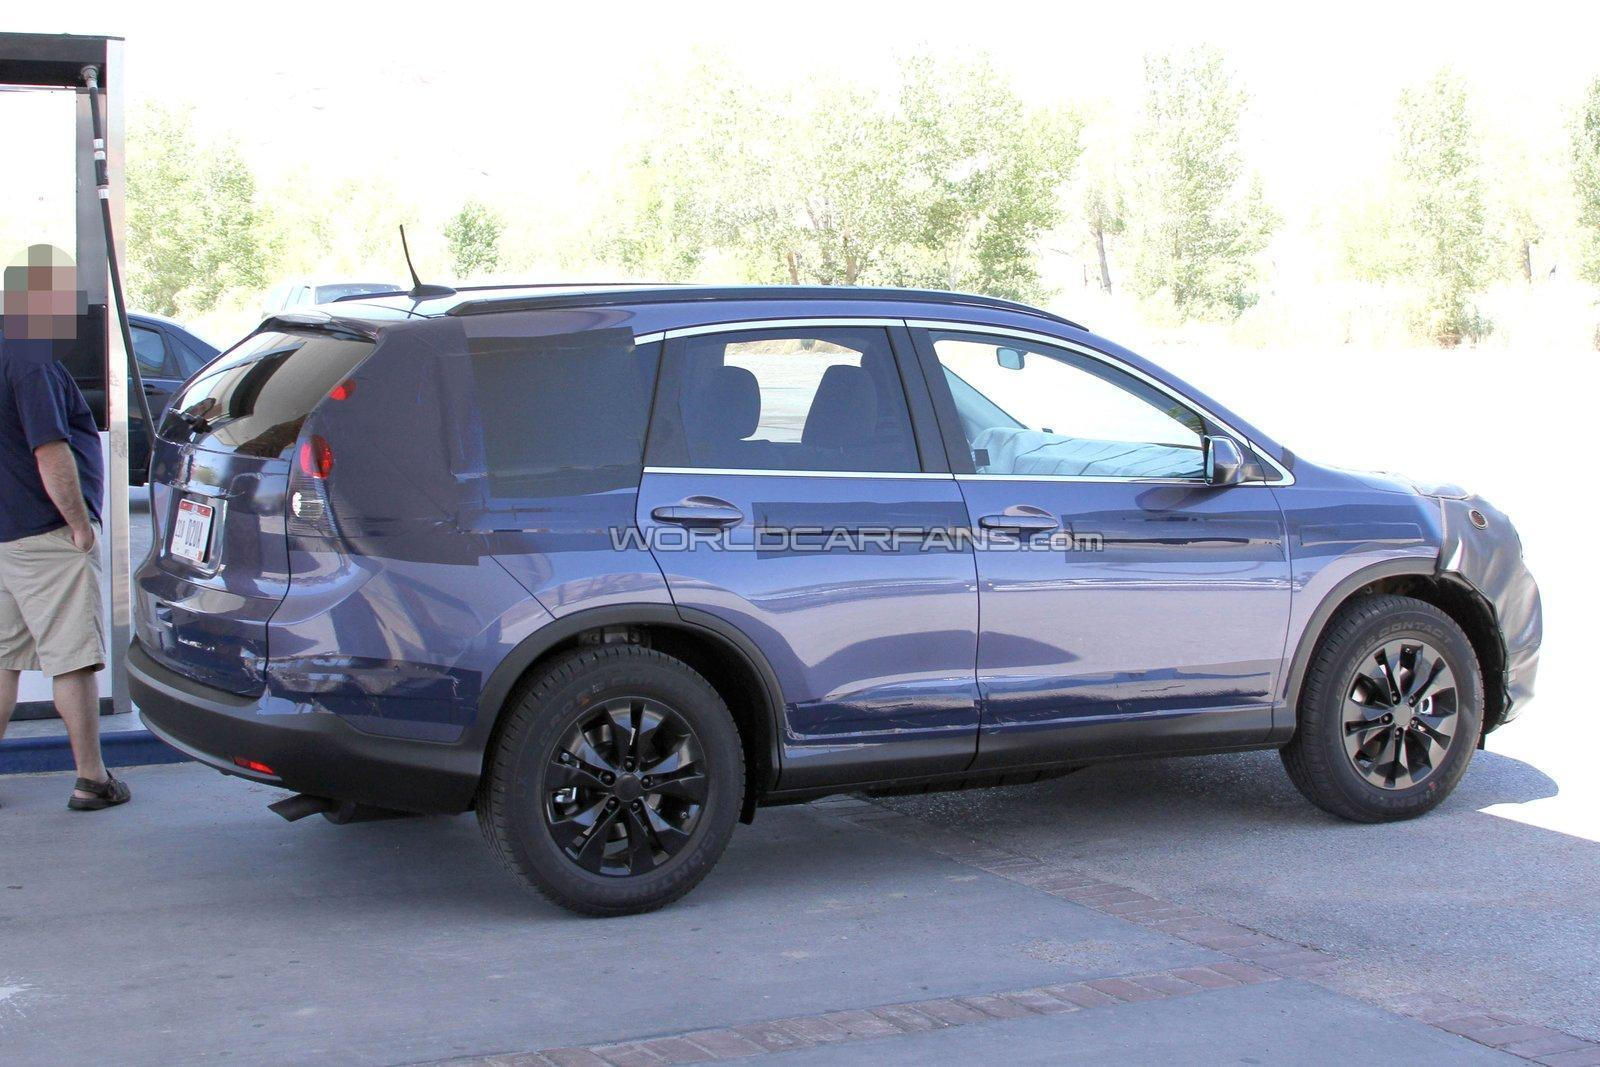 2013 Honda CR-V spied in the